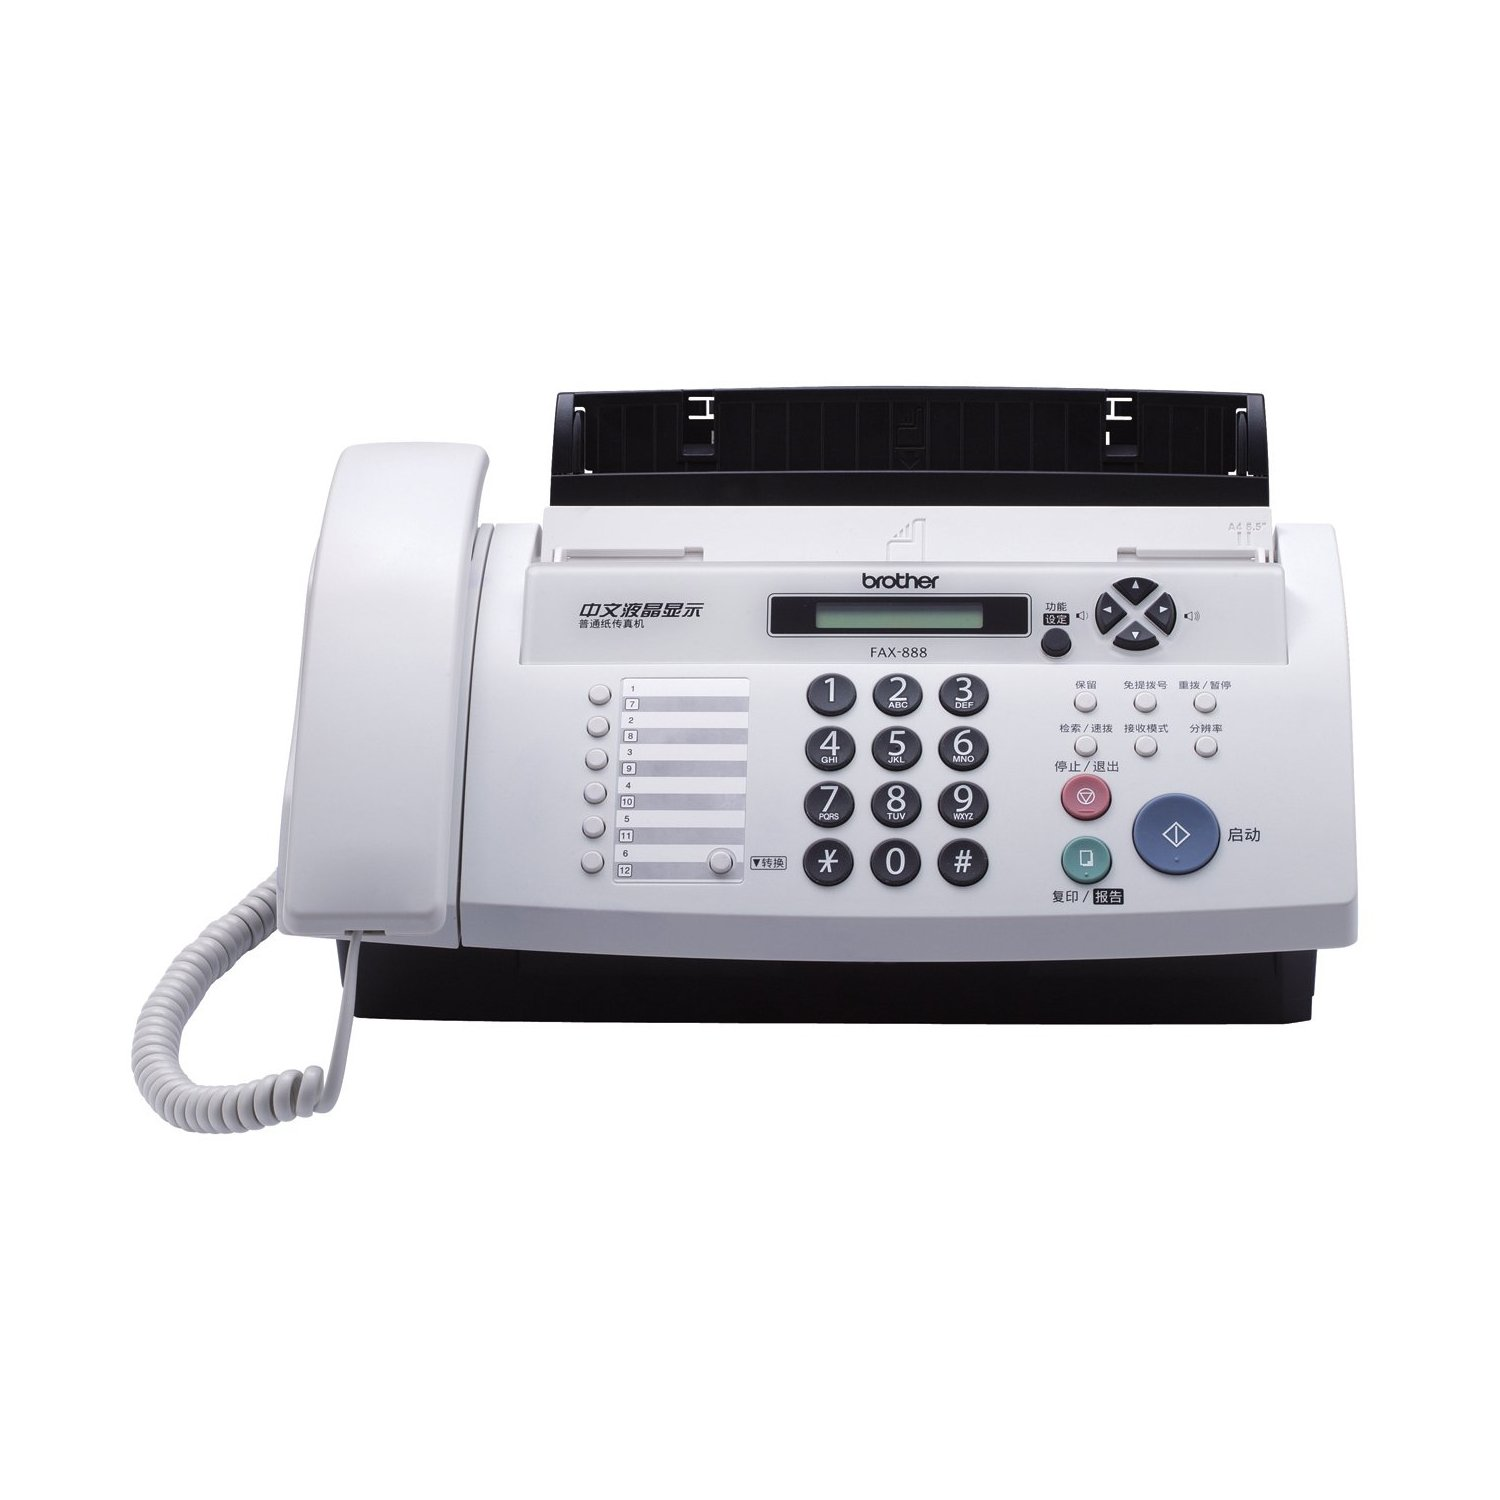 Brother fax-888 fax machine home office paper a4 plain paper fax machine phone chinese show